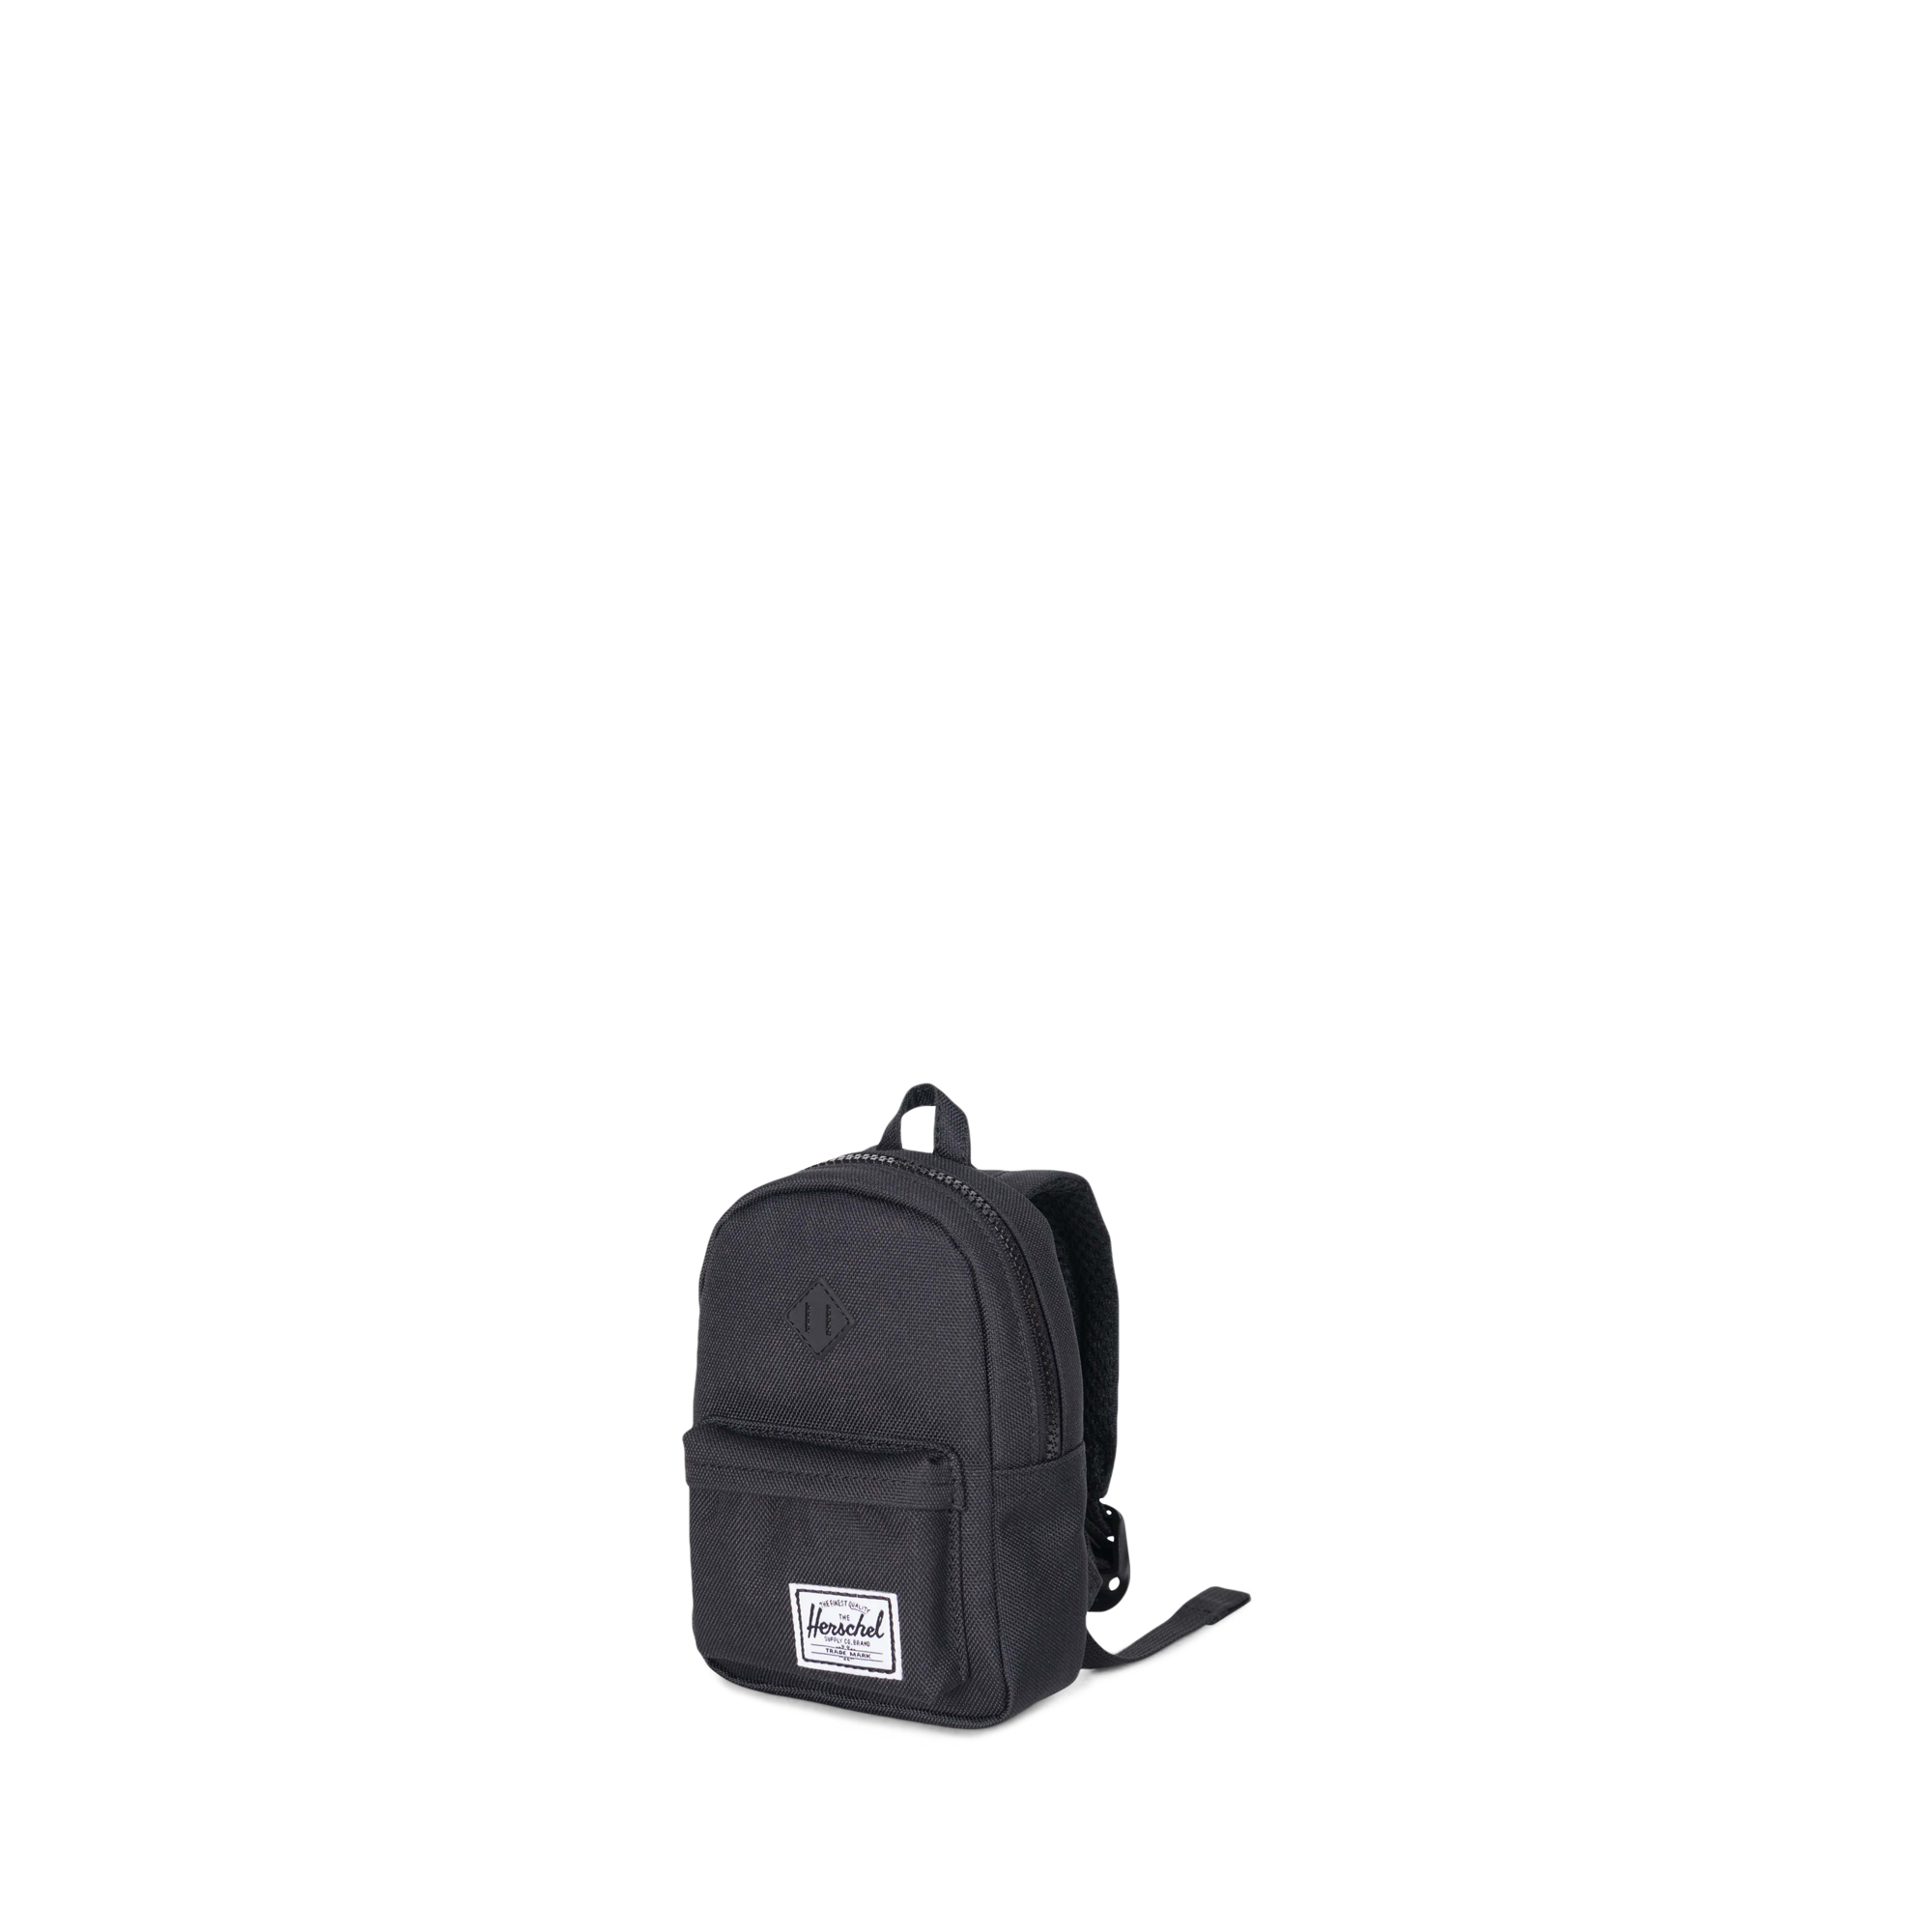 9c5a944eac5 Heritage Backpack Mini